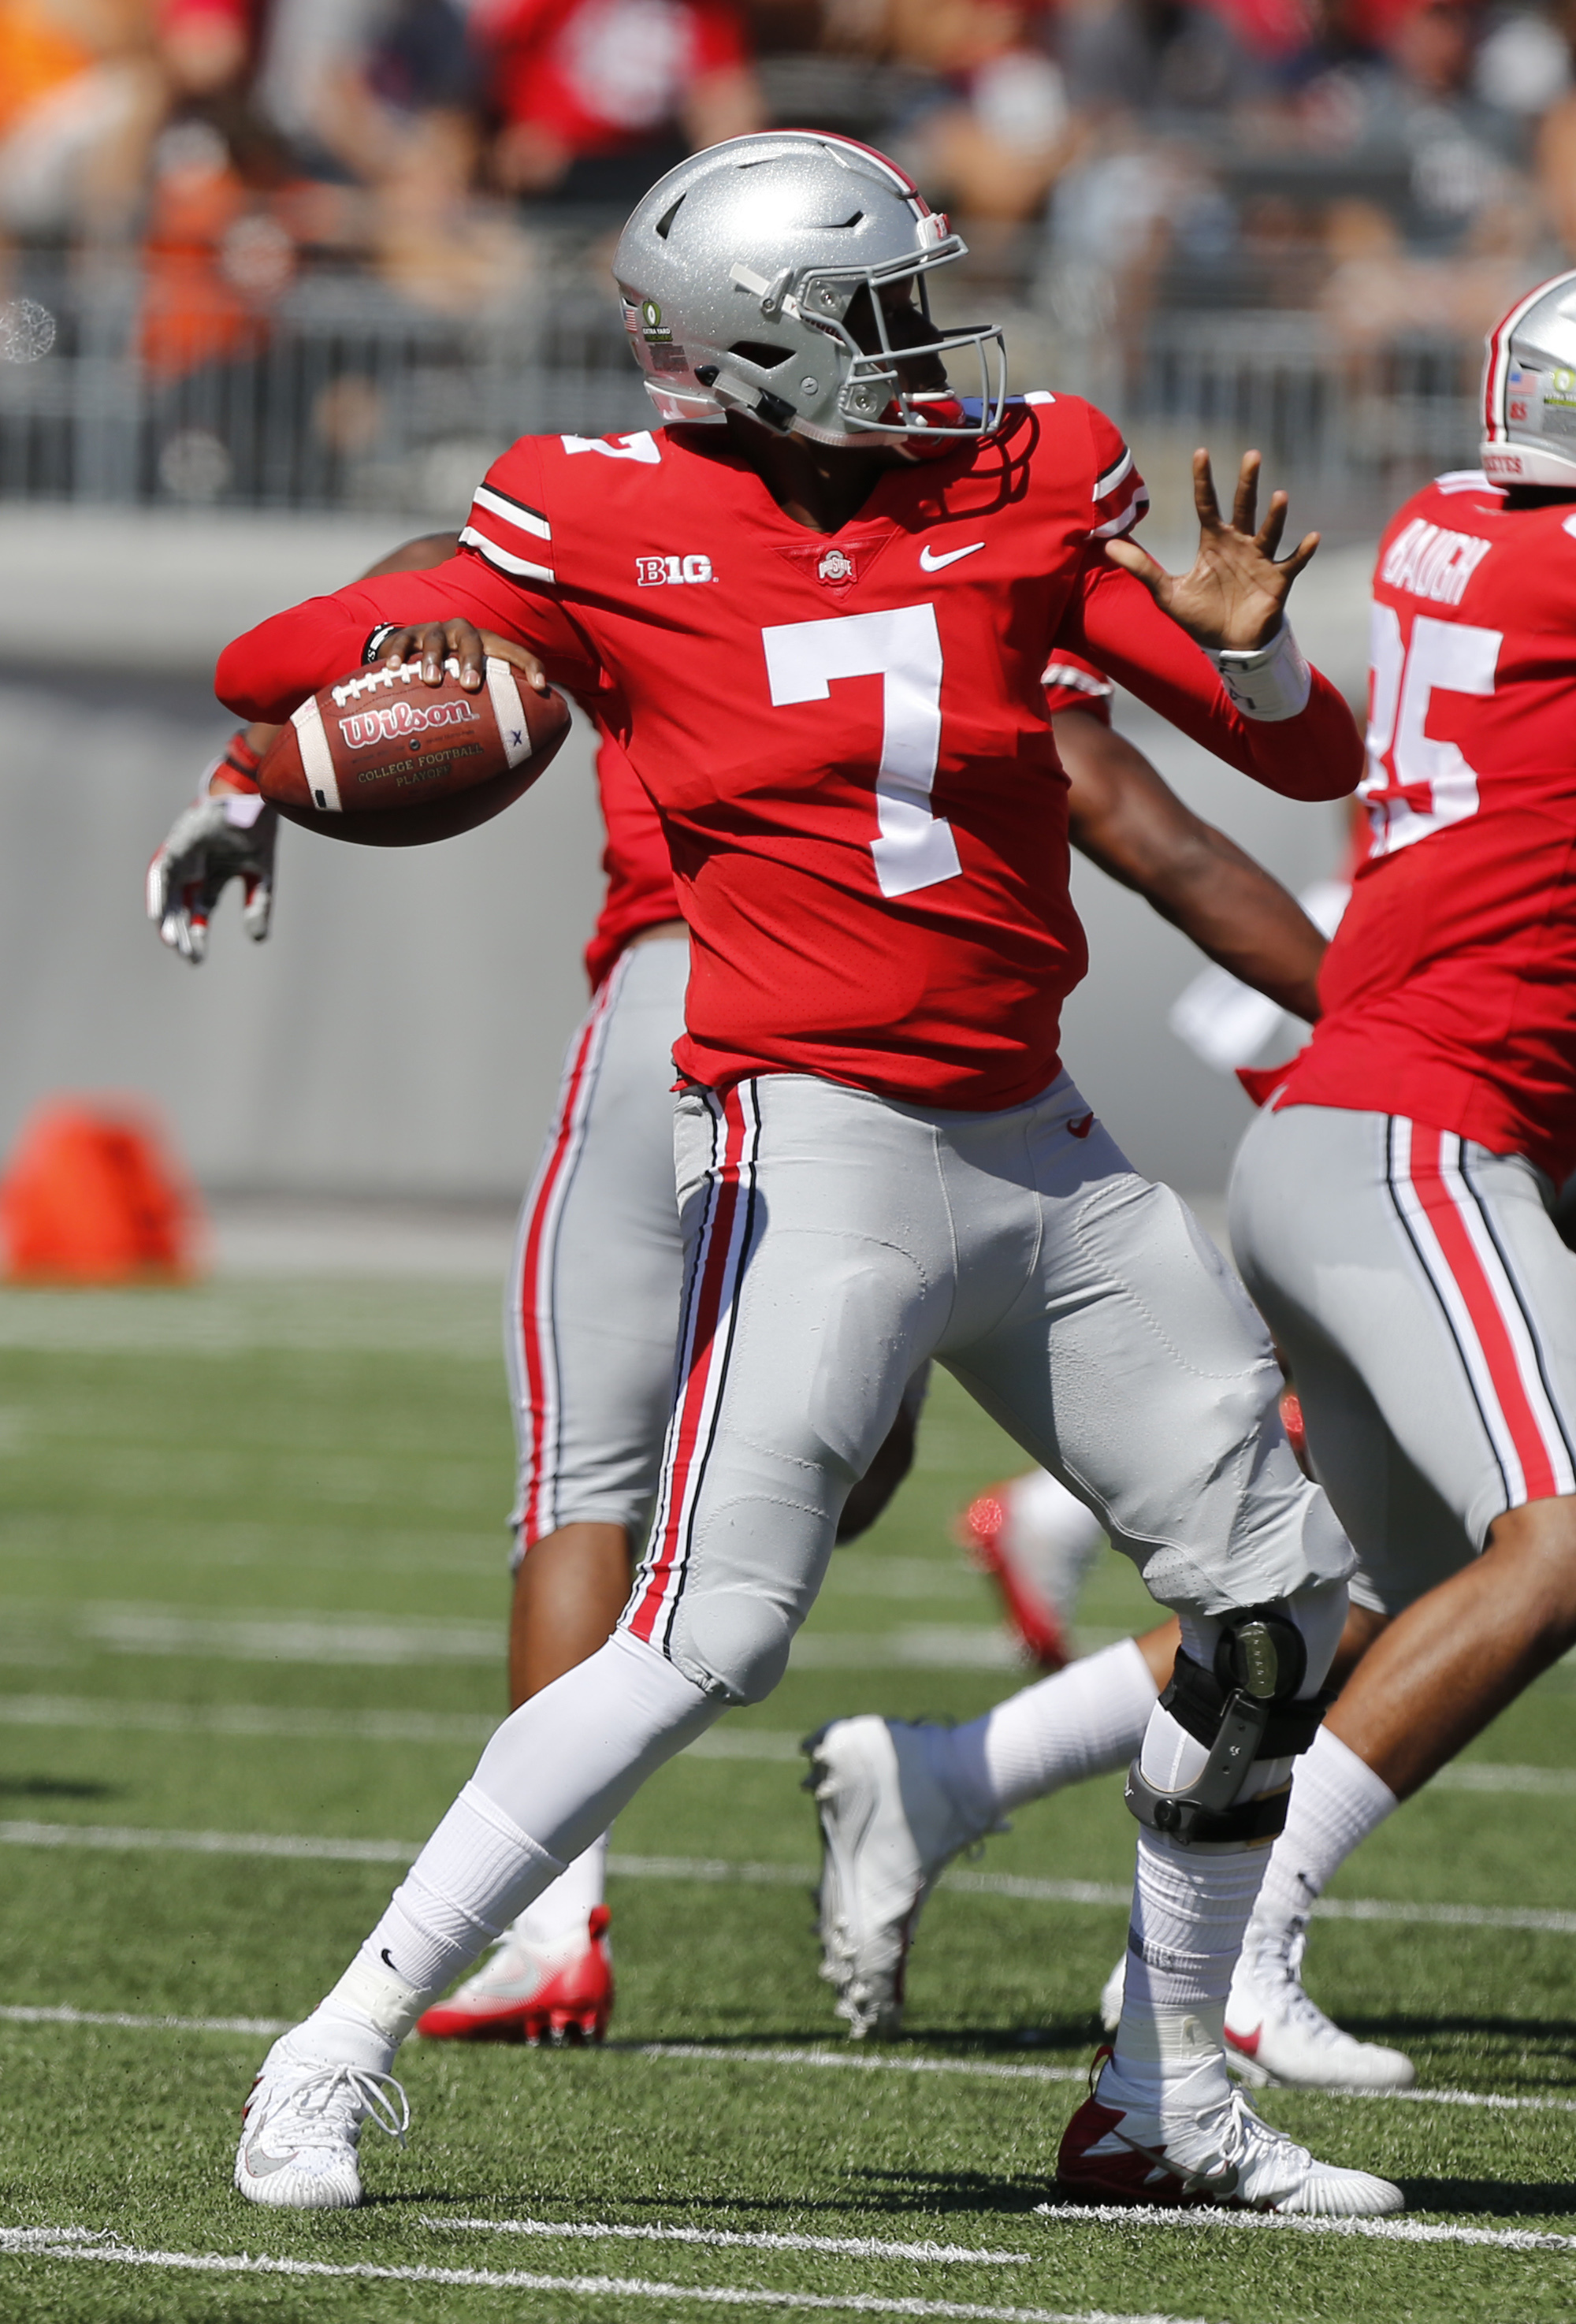 Meyer Says No Separation In Ohio States QB Battle The Blade